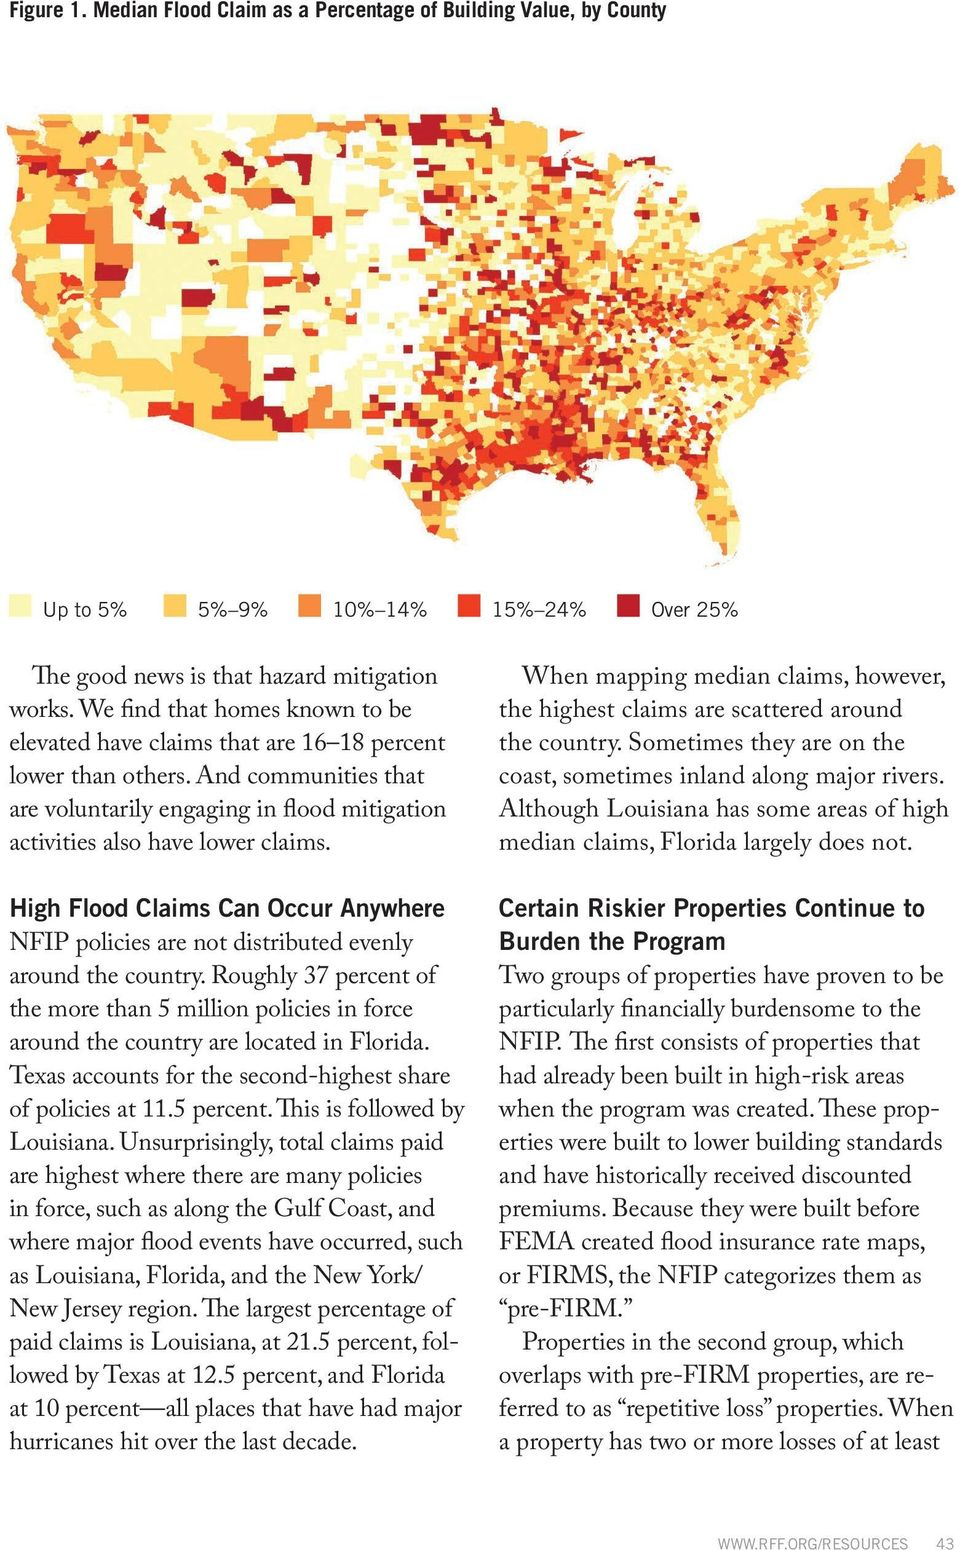 High Flood Claims Can Occur Anywhere NFIP policies are not distributed evenly around the country.